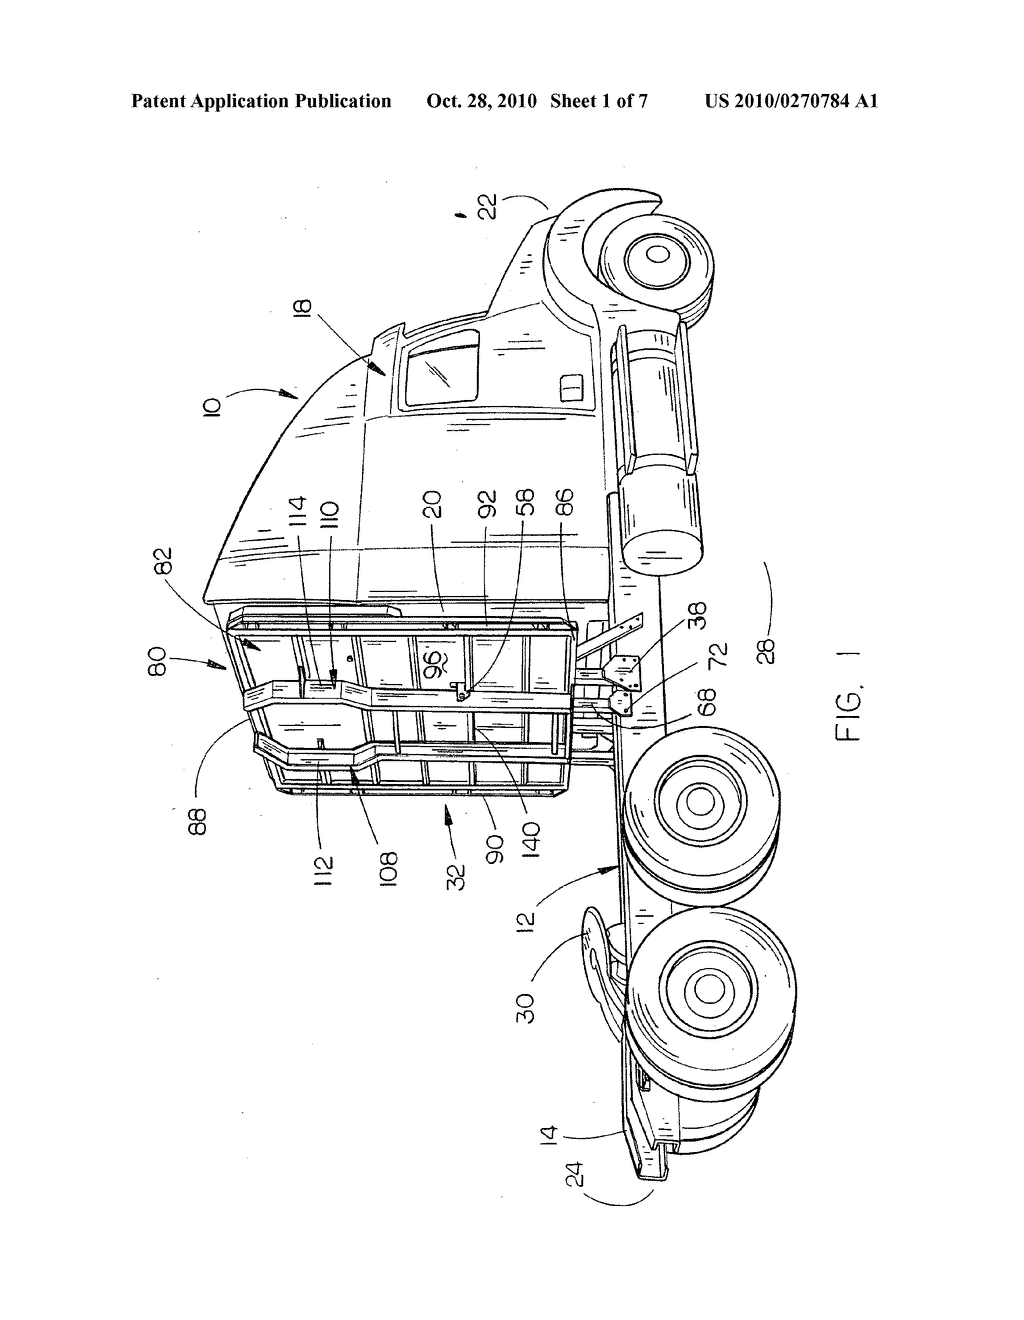 hight resolution of folding cargo deck assembly for a fifth wheel truck diagram schematic and image 02